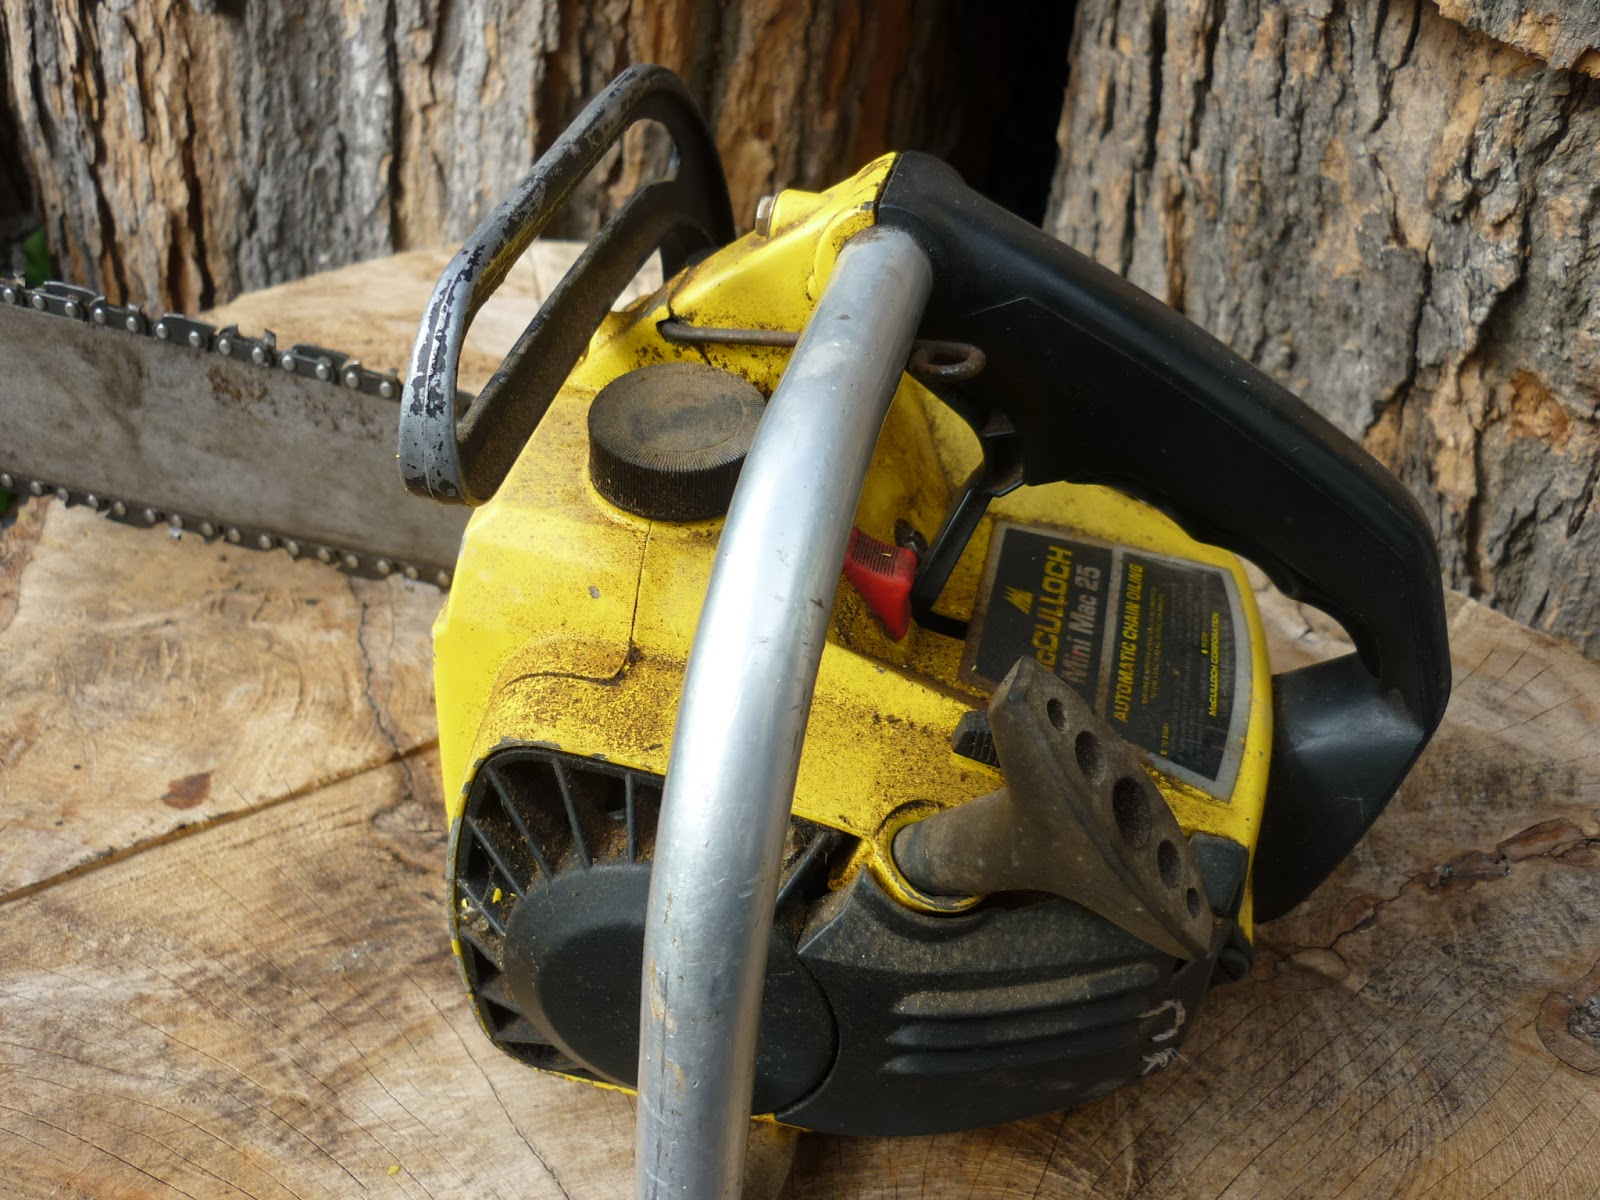 VINTAGE CHAINSAW COLLECTION: MCCULLOCH MINI MAC 25